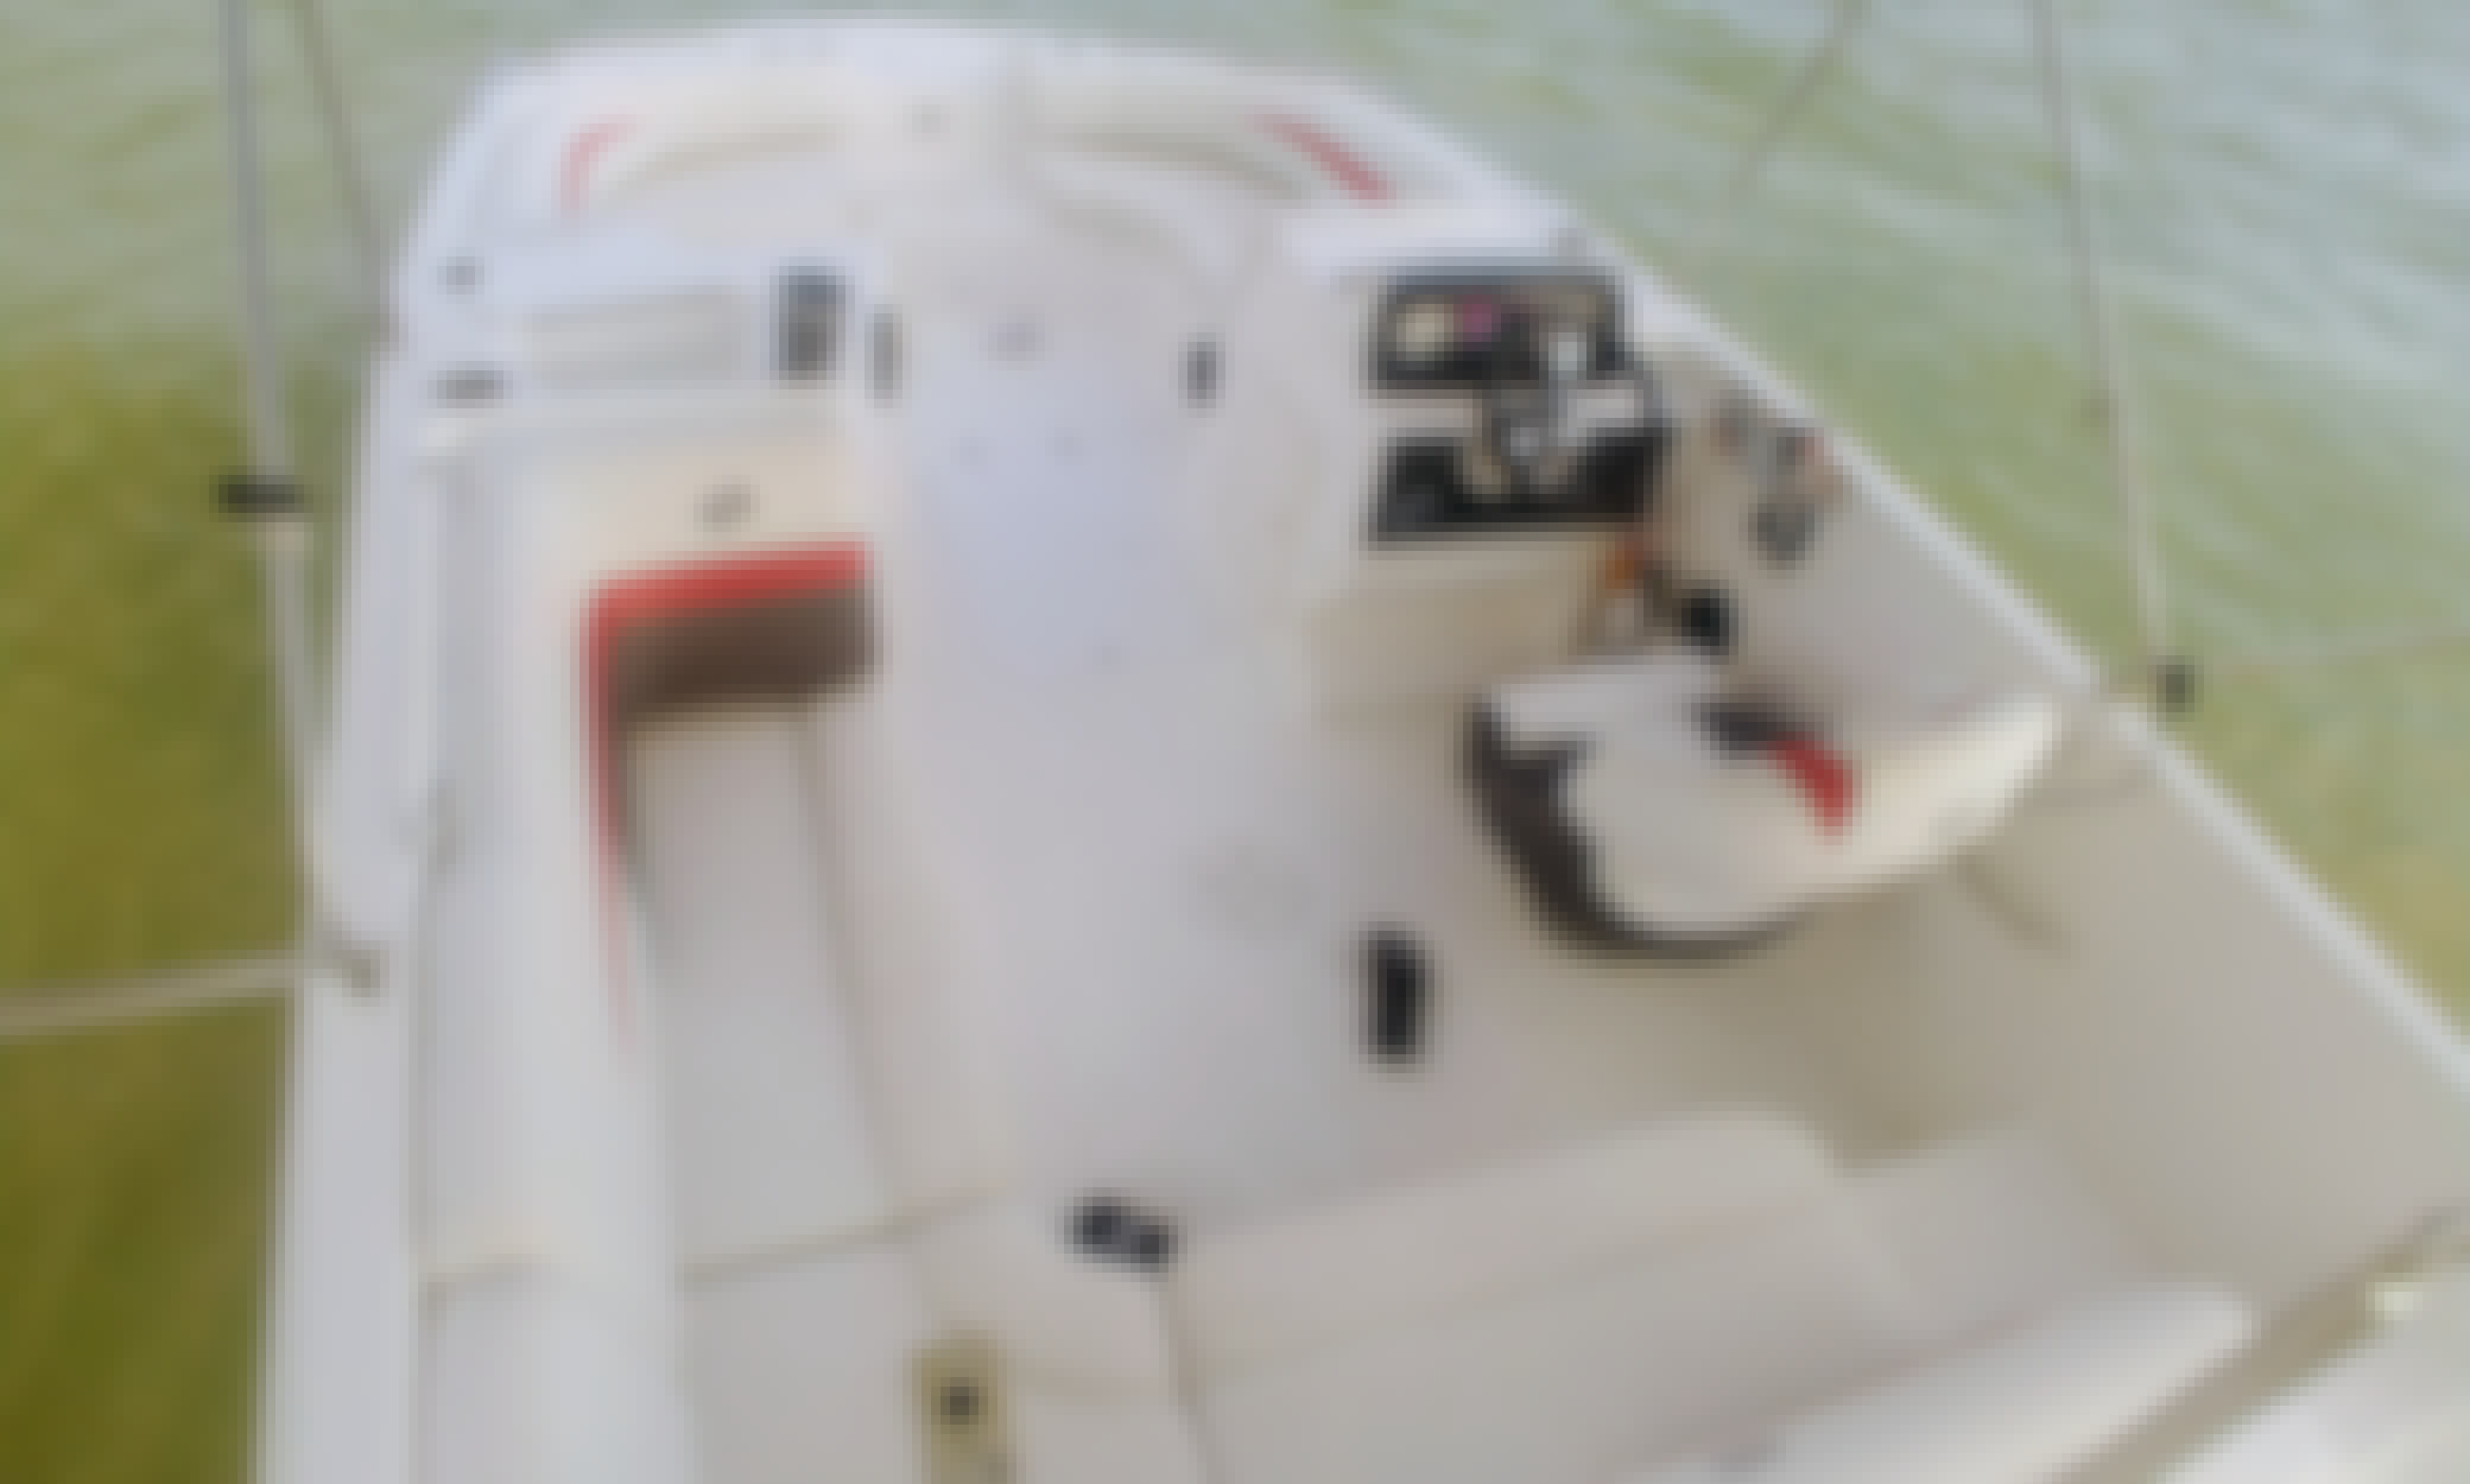 Super Fresh Hurricane 188ss Deck Boat for Rent in Bay Pines